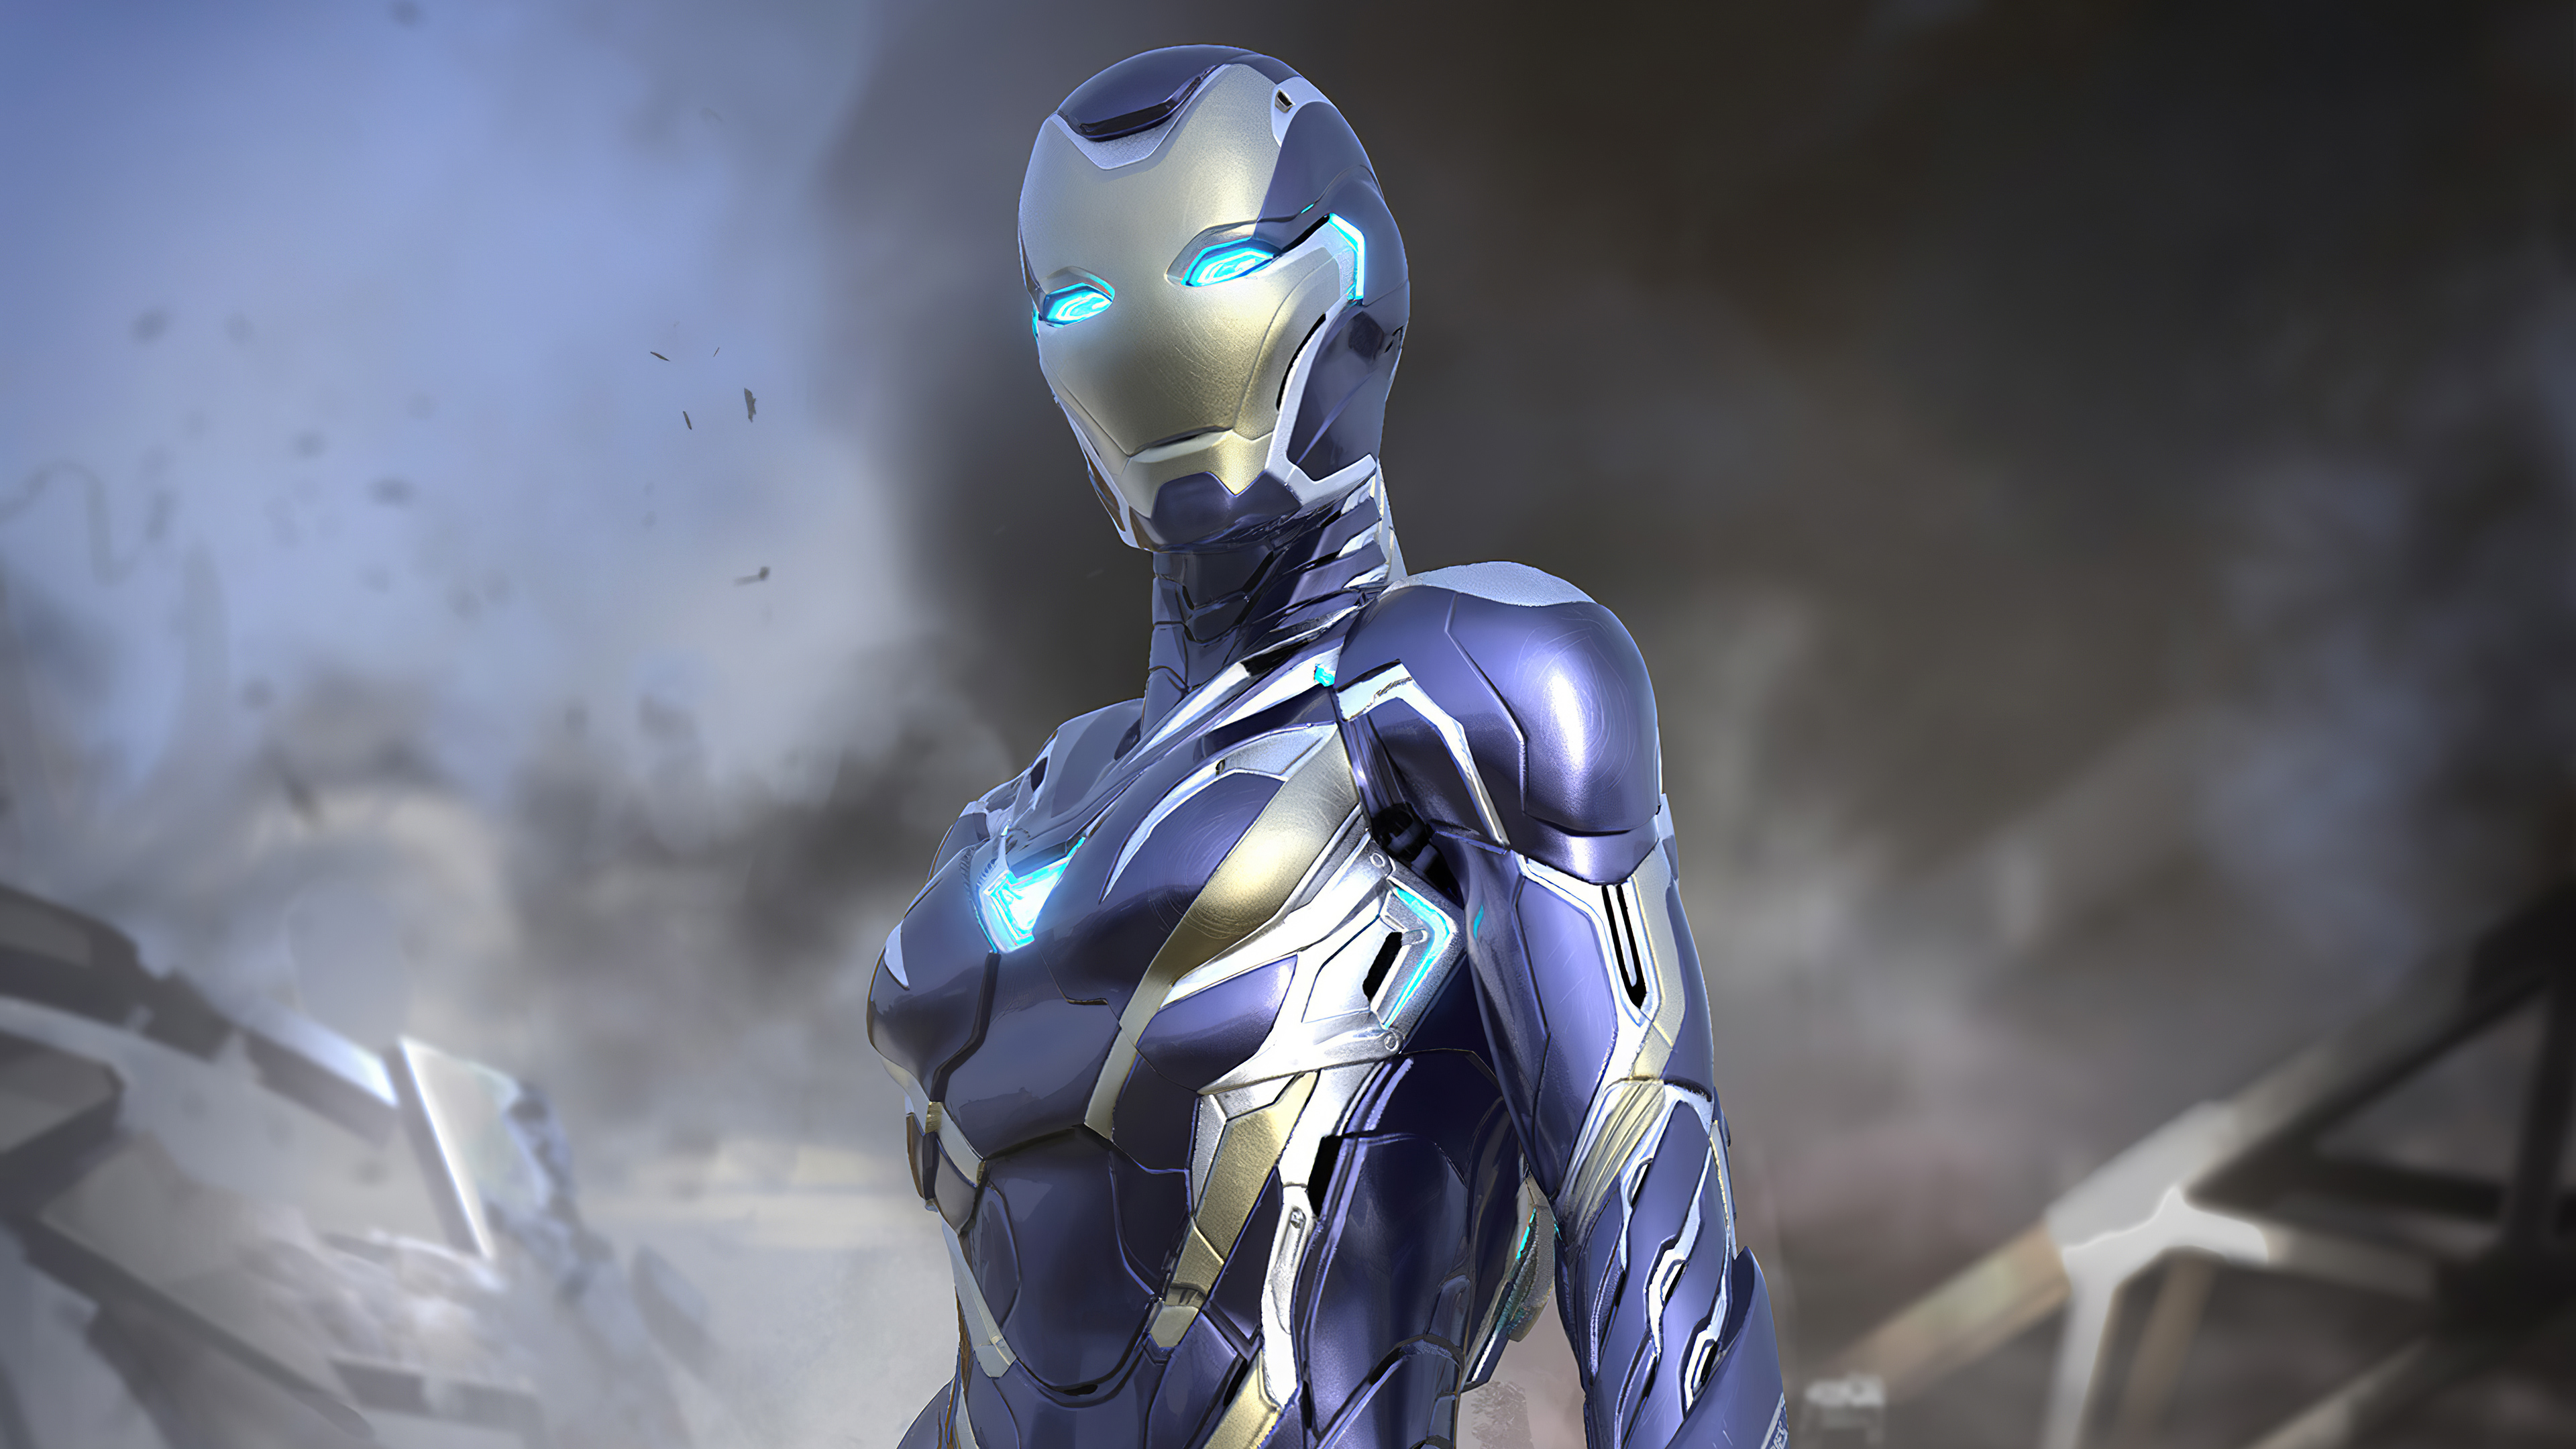 avengers endgame rescue suit final design 1581356931 - Avengers Endgame Rescue Suit Final Design - Rescue Suit wallpapers, Rescue Suit 4k wallpapers, iron girl wallpapers 4k